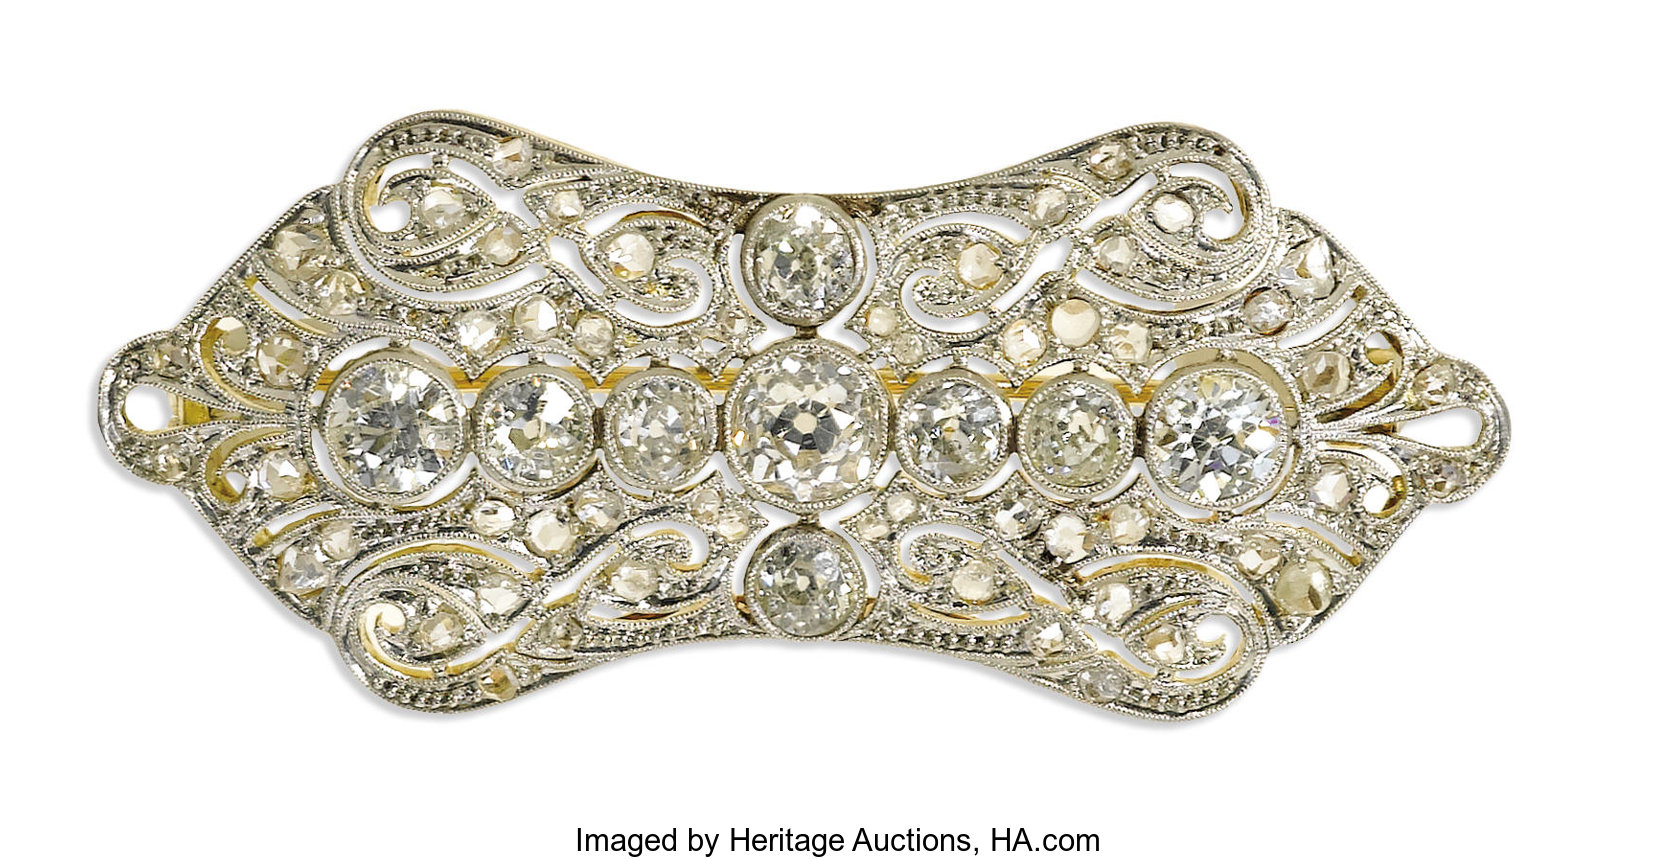 c87c71db5 Edwardian Diamond, Platinum-Topped Gold Brooch. The brooch is | Lot #39285  | Heritage Auctions